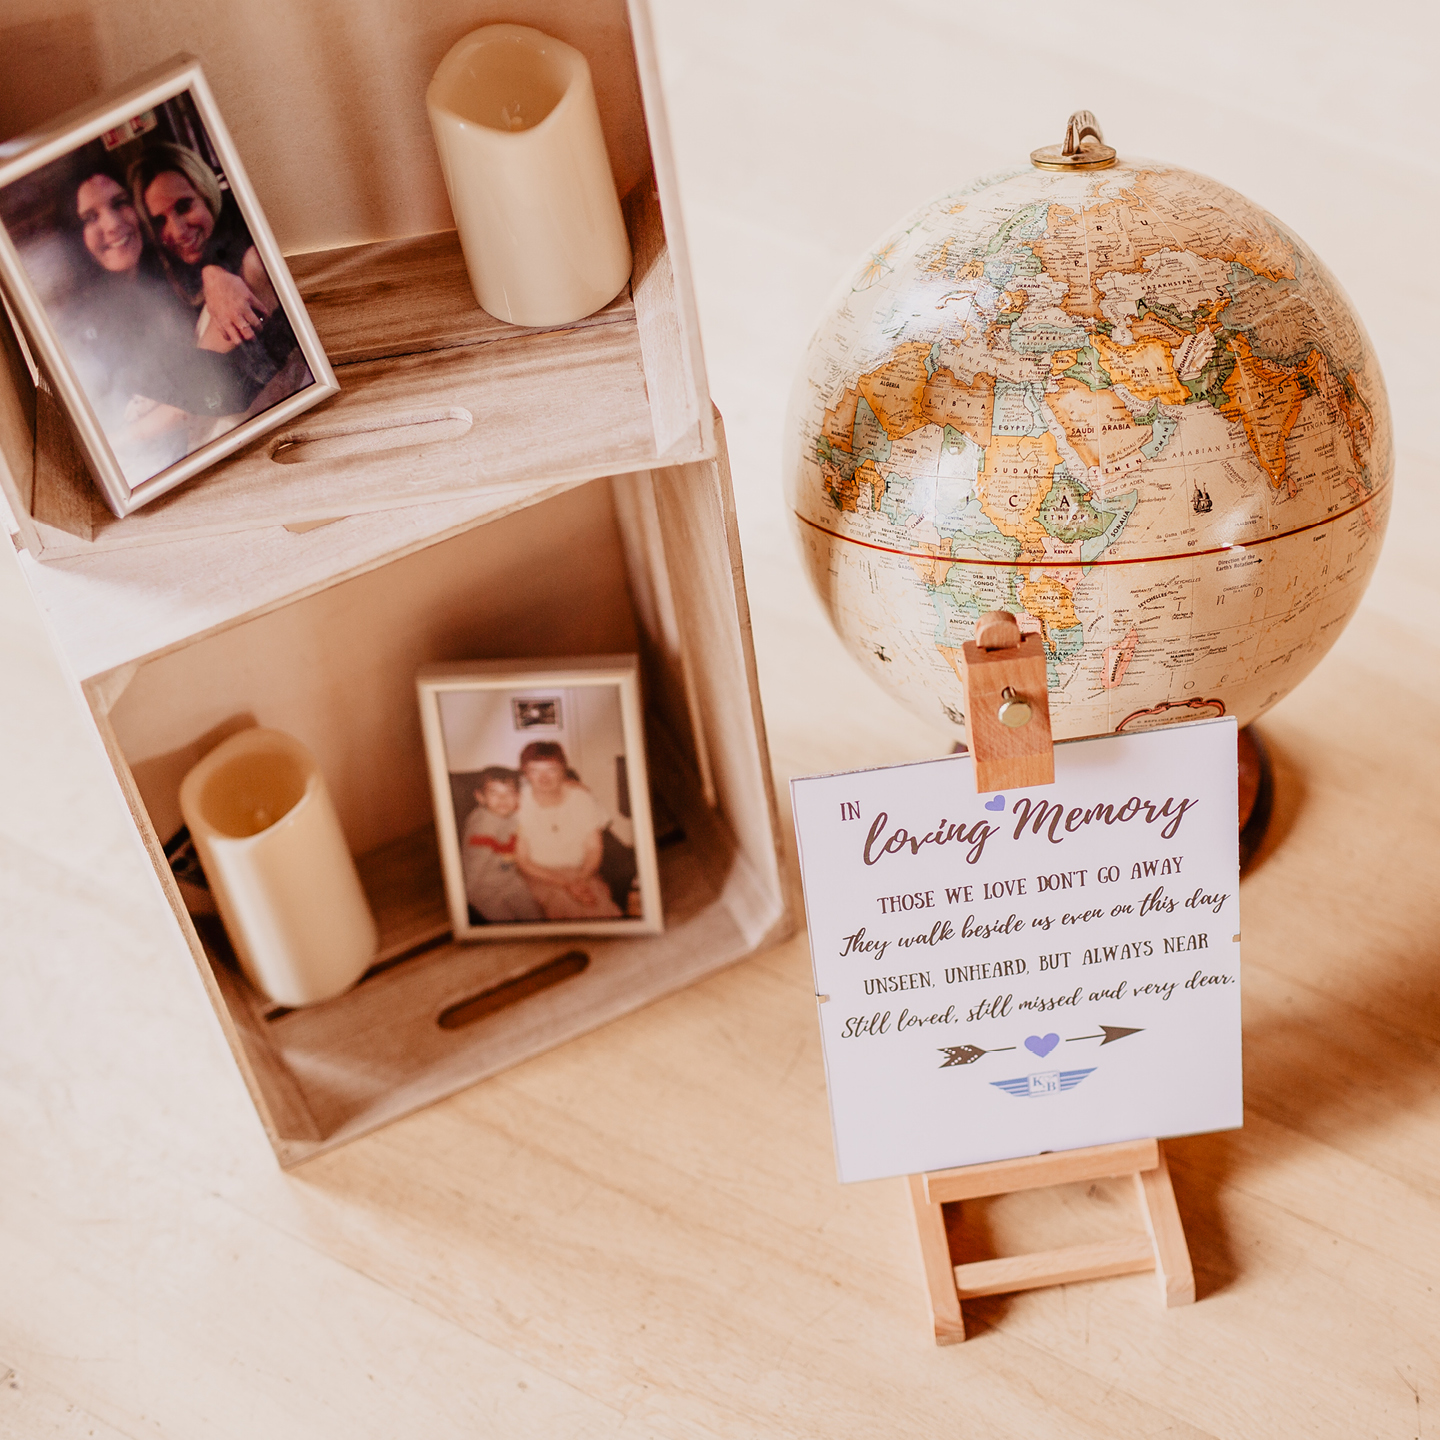 Ideas for an intimate wedding, in memory of wedding